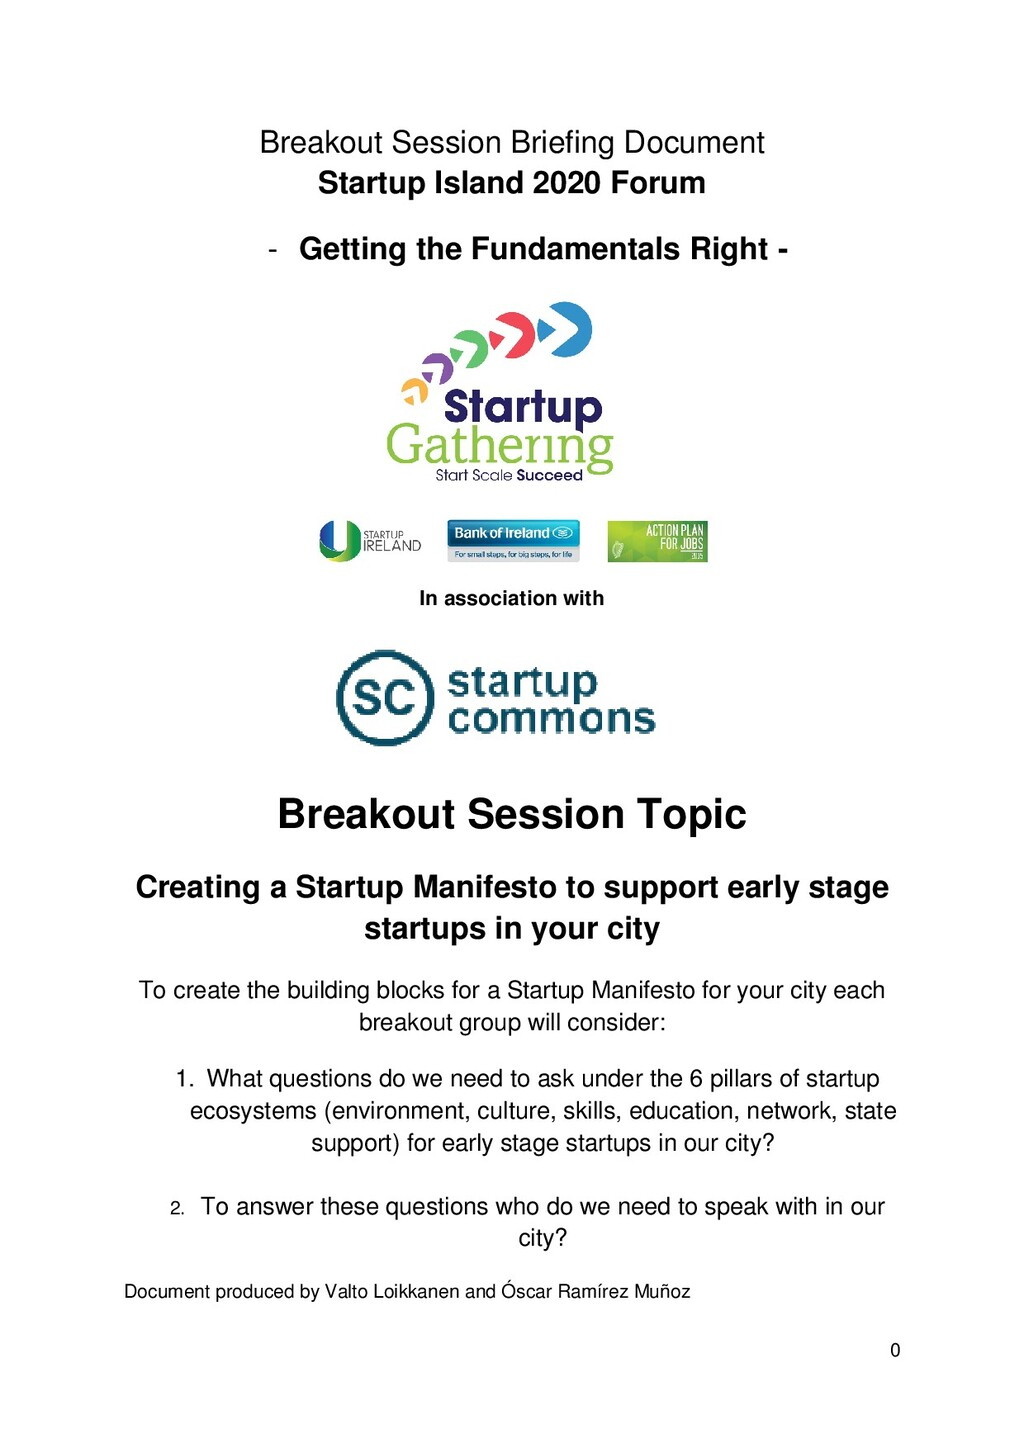 Breakout Session Briefing Document Startup Isla...